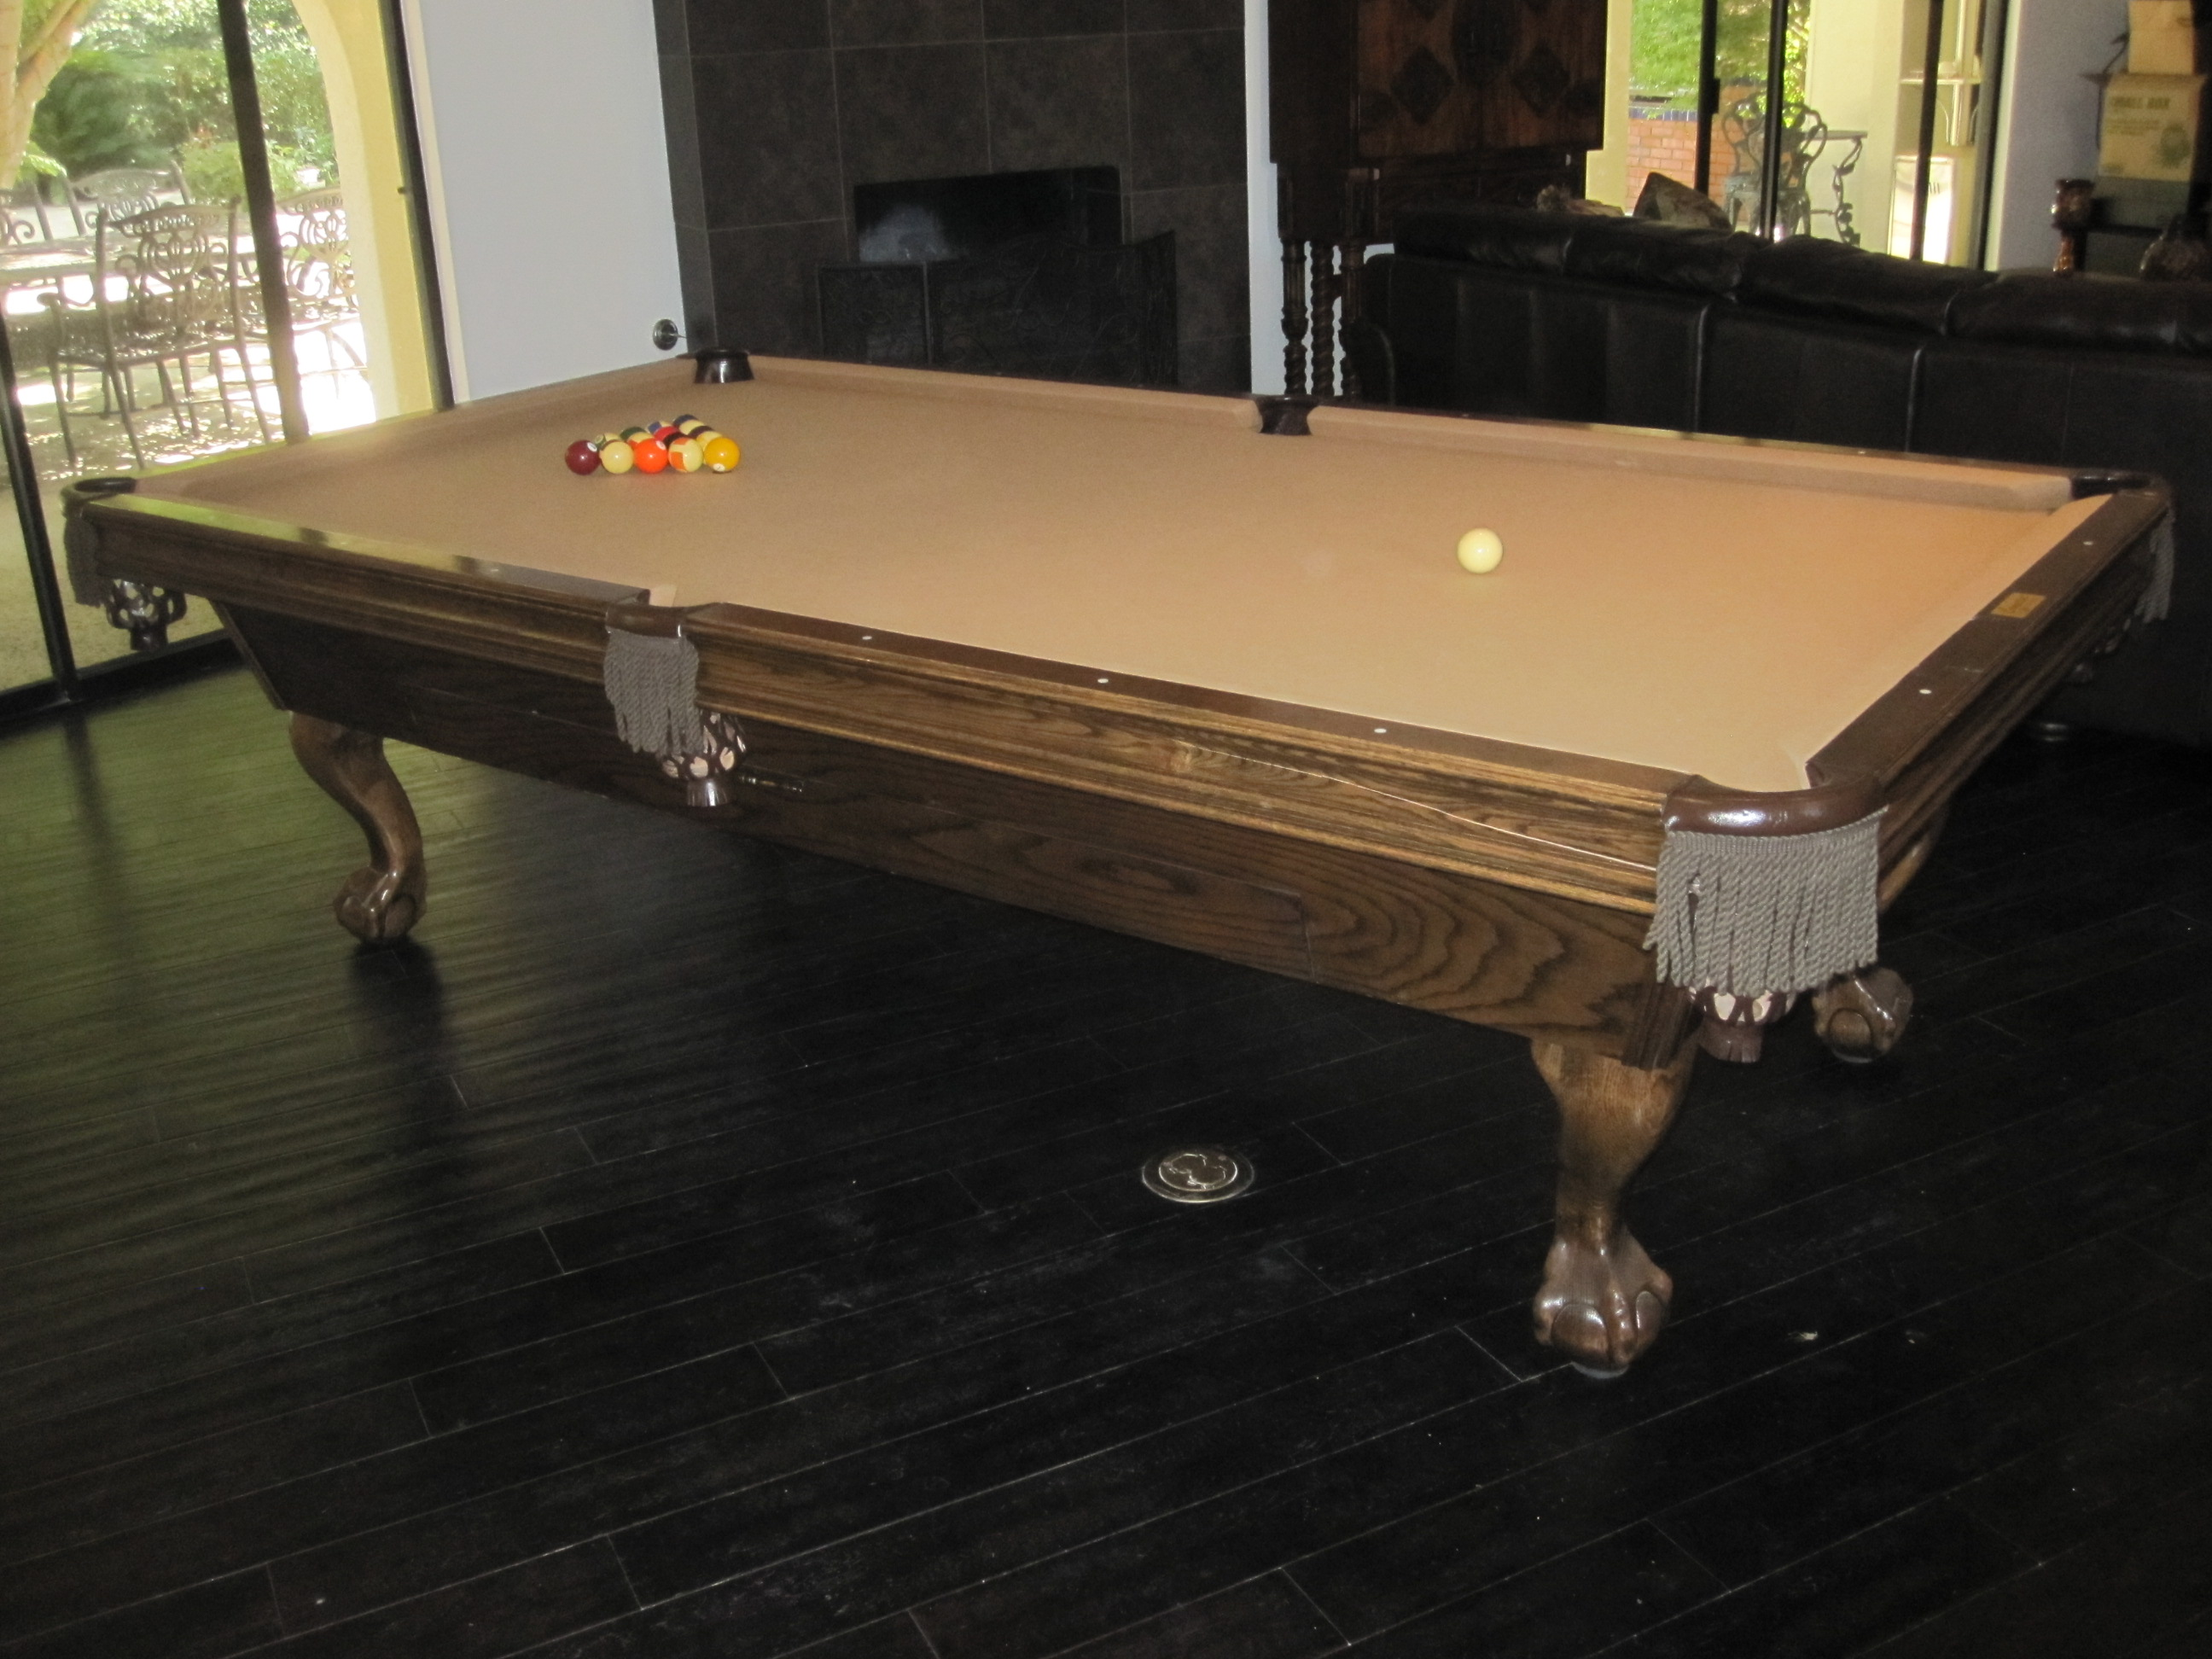 Ordinaire After The Rain Stopped Yesterday, We Headed Over To Chino Hills, CA To Move  A Nine Foot Camelot Pool Table For Our Client.